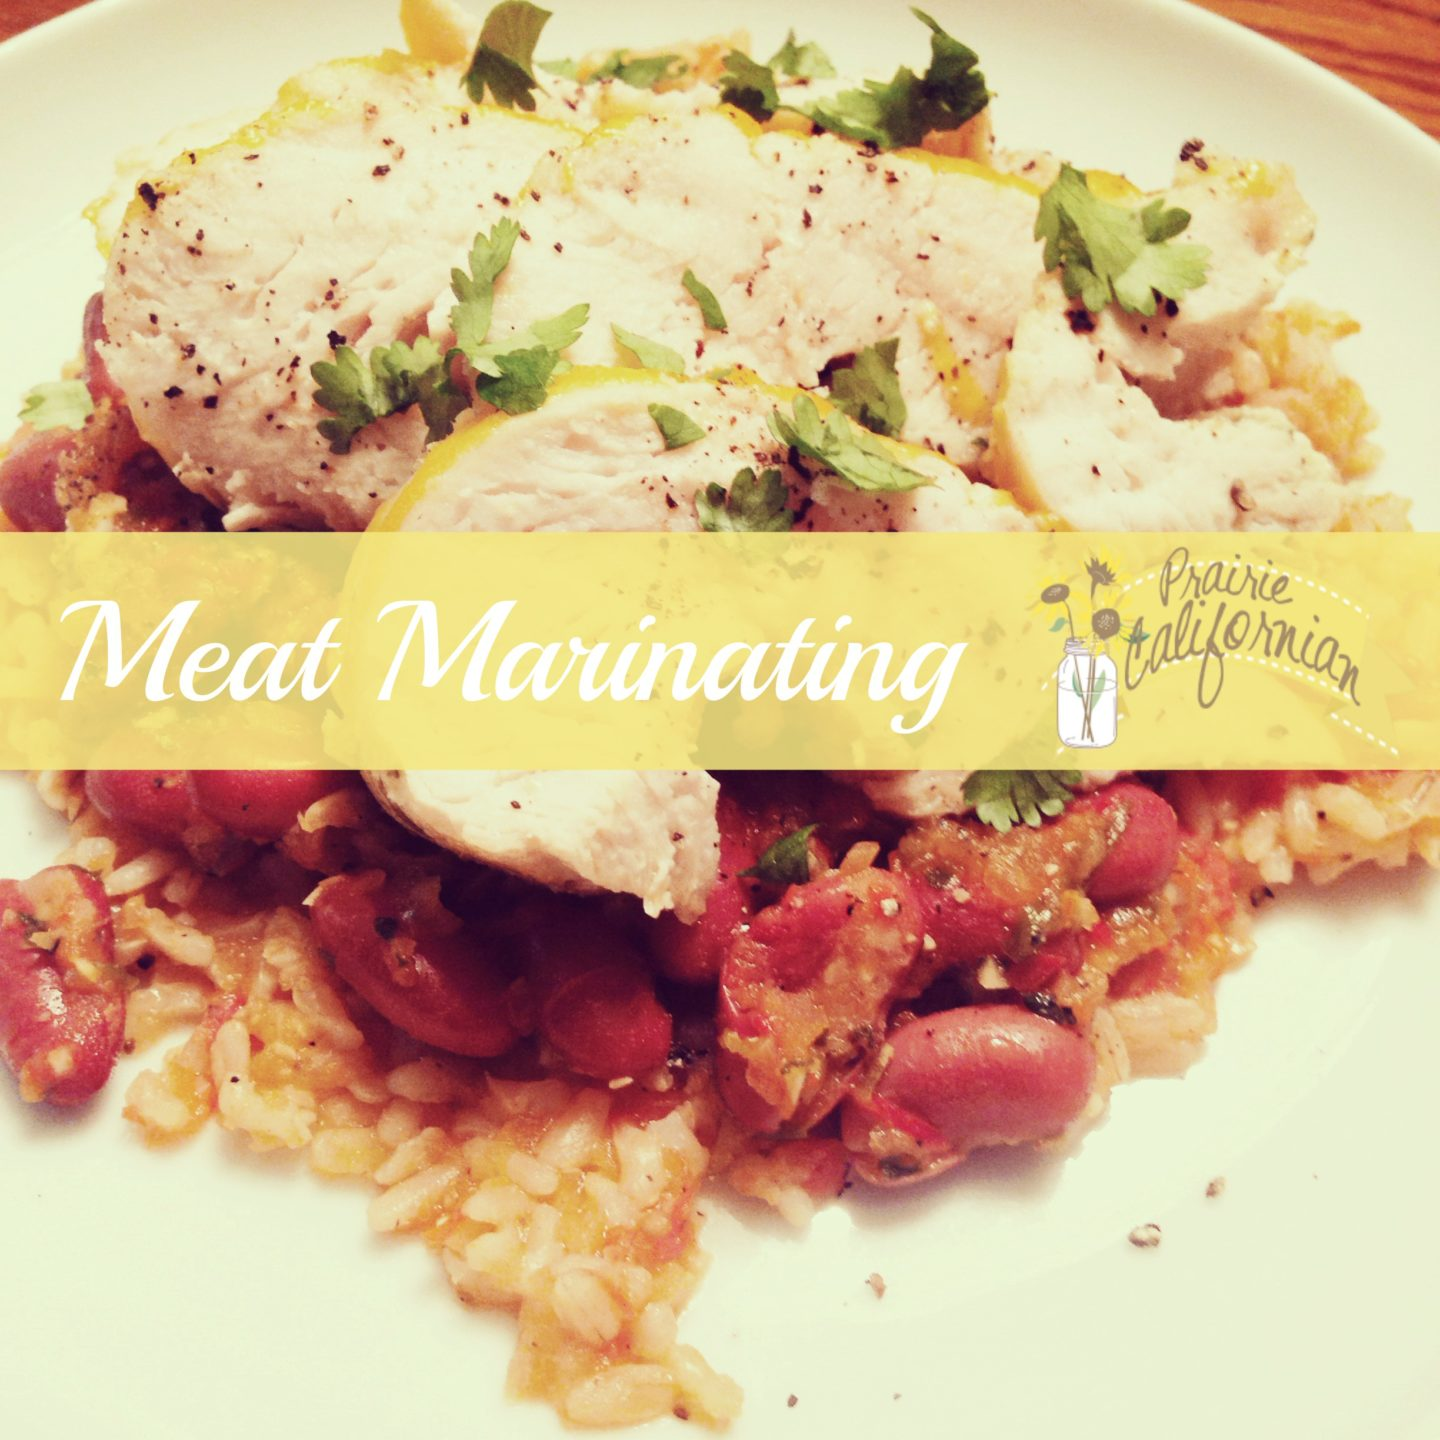 Meat Marinating 101 with Recipes